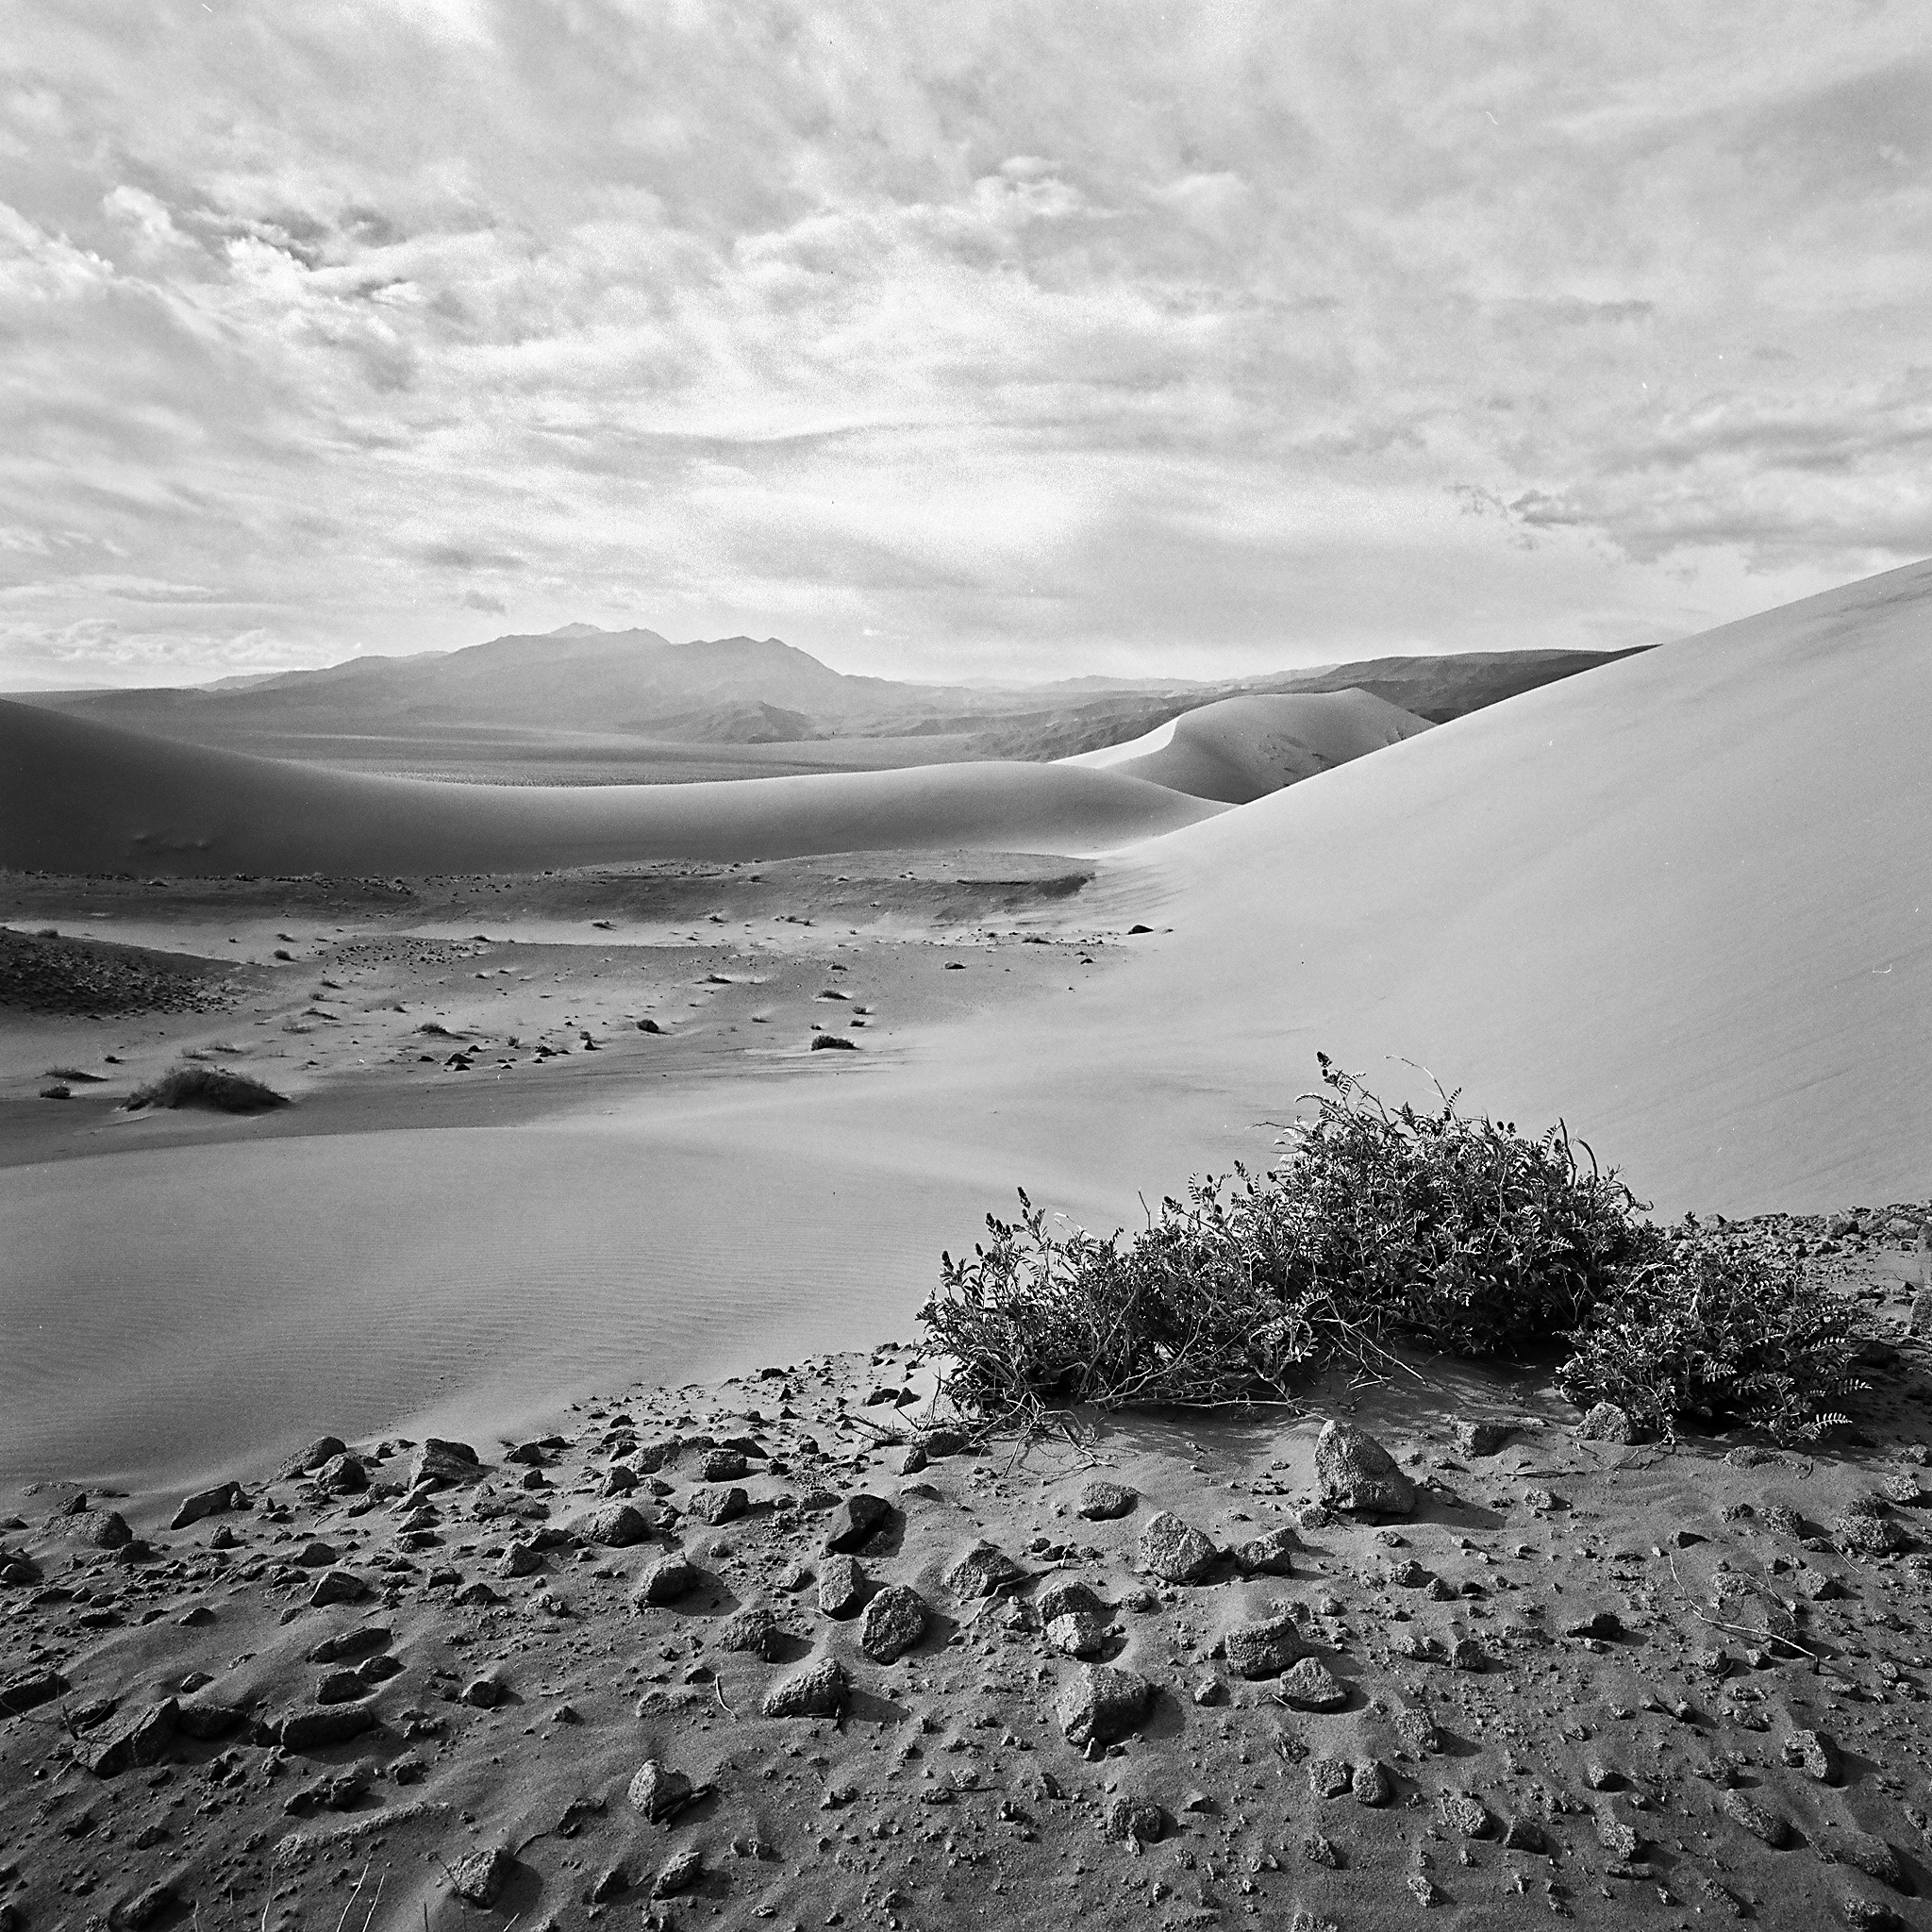 Panamint Dunes, Death Valley National Park, California © 2012.  Image: Hasselblad SWC + Zeiss Biogon 1:4.5/38mm.